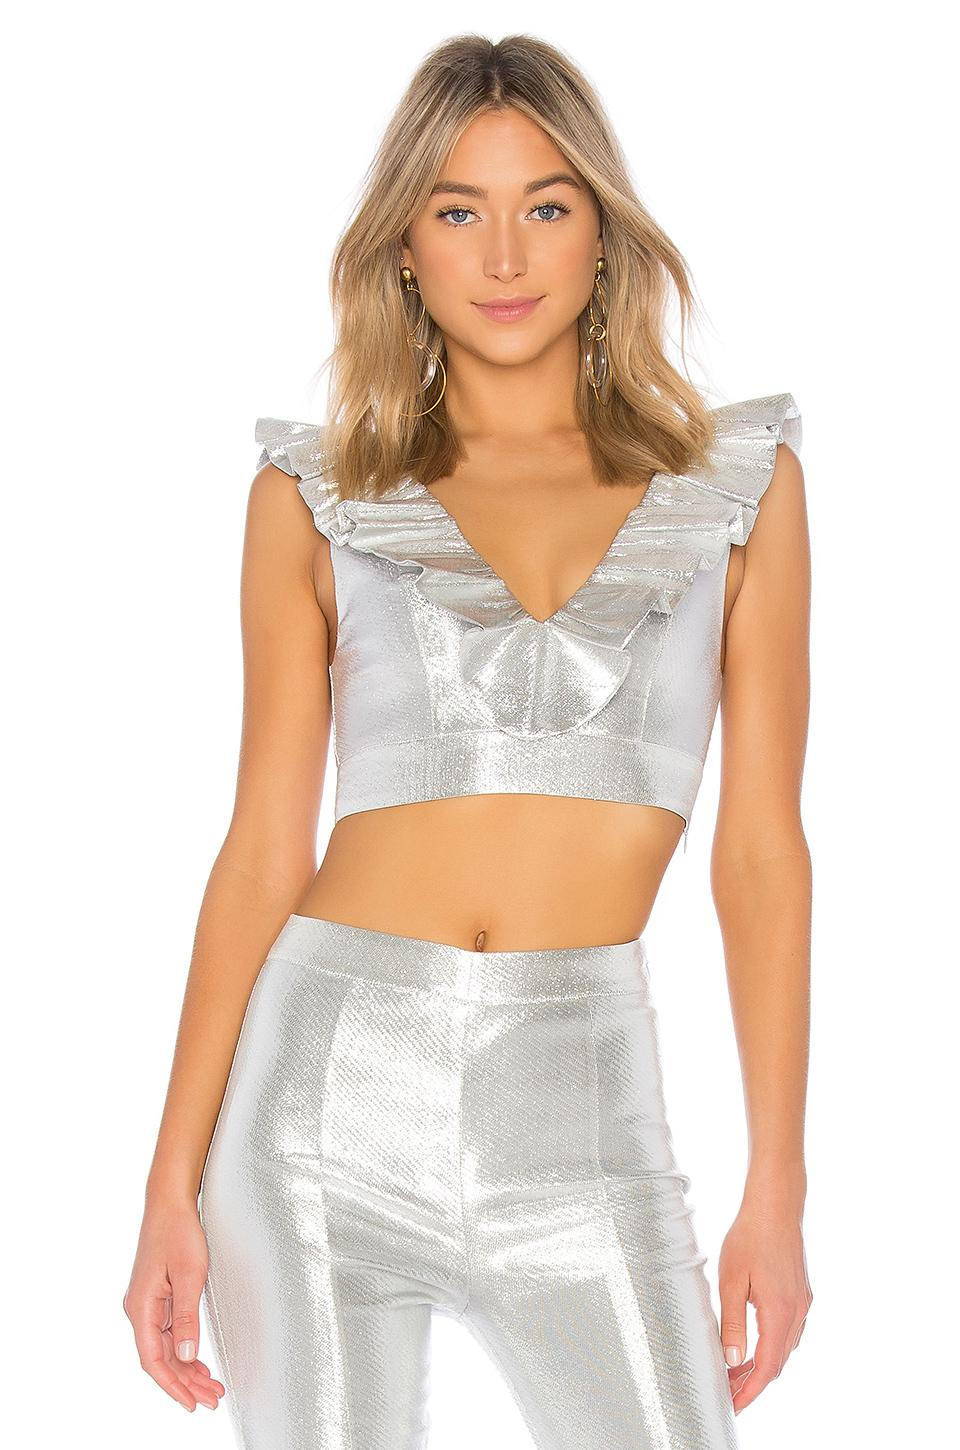 X By Nbd Fever Top In Metallic Silver